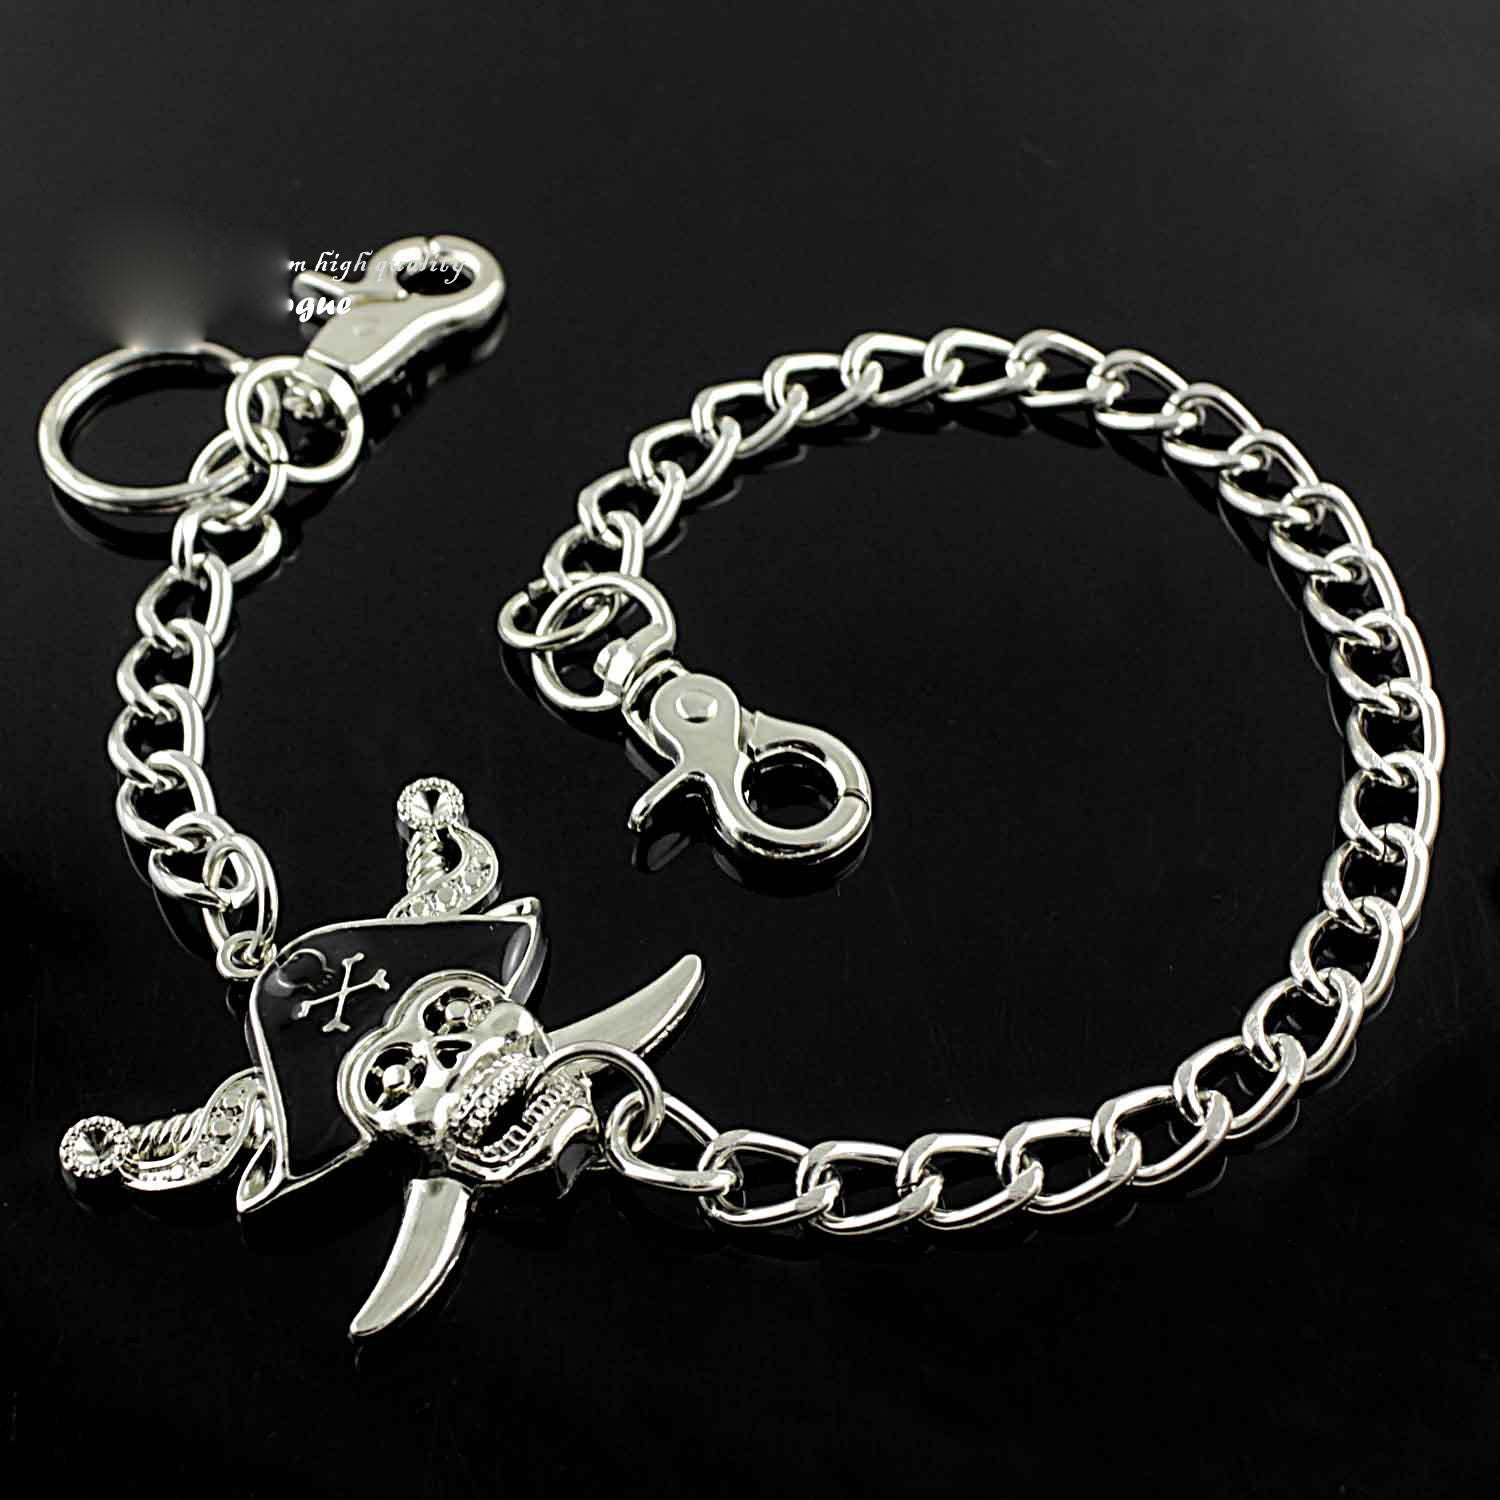 Solid Stainless Steel Pirate Skull Wallet Chain Cool Punk Rock Biker Trucker Wallet Chain Trucker Wallet Chain for Men